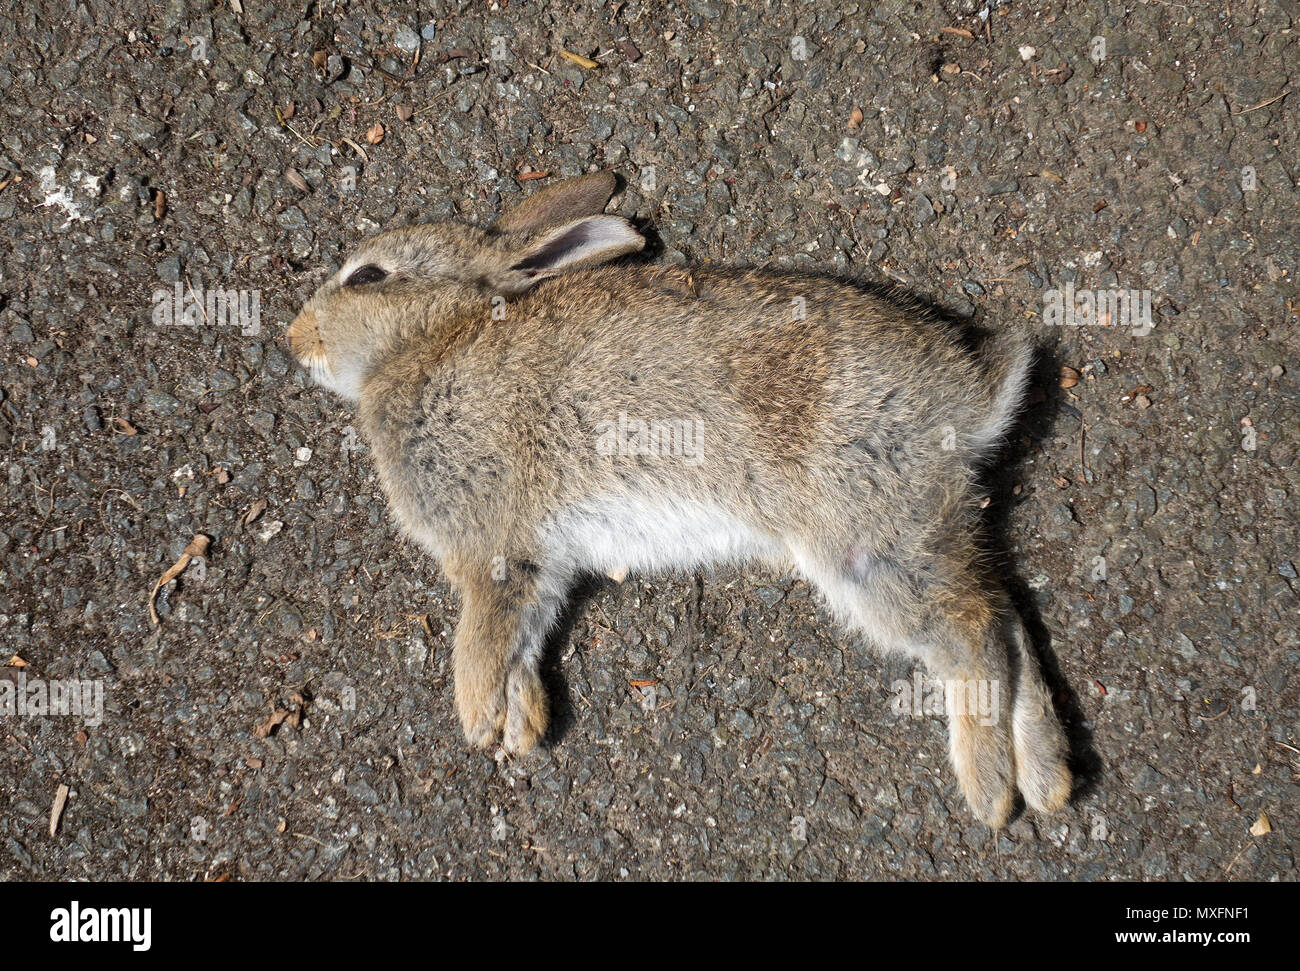 dead baby young rabbit kit - Stock Image